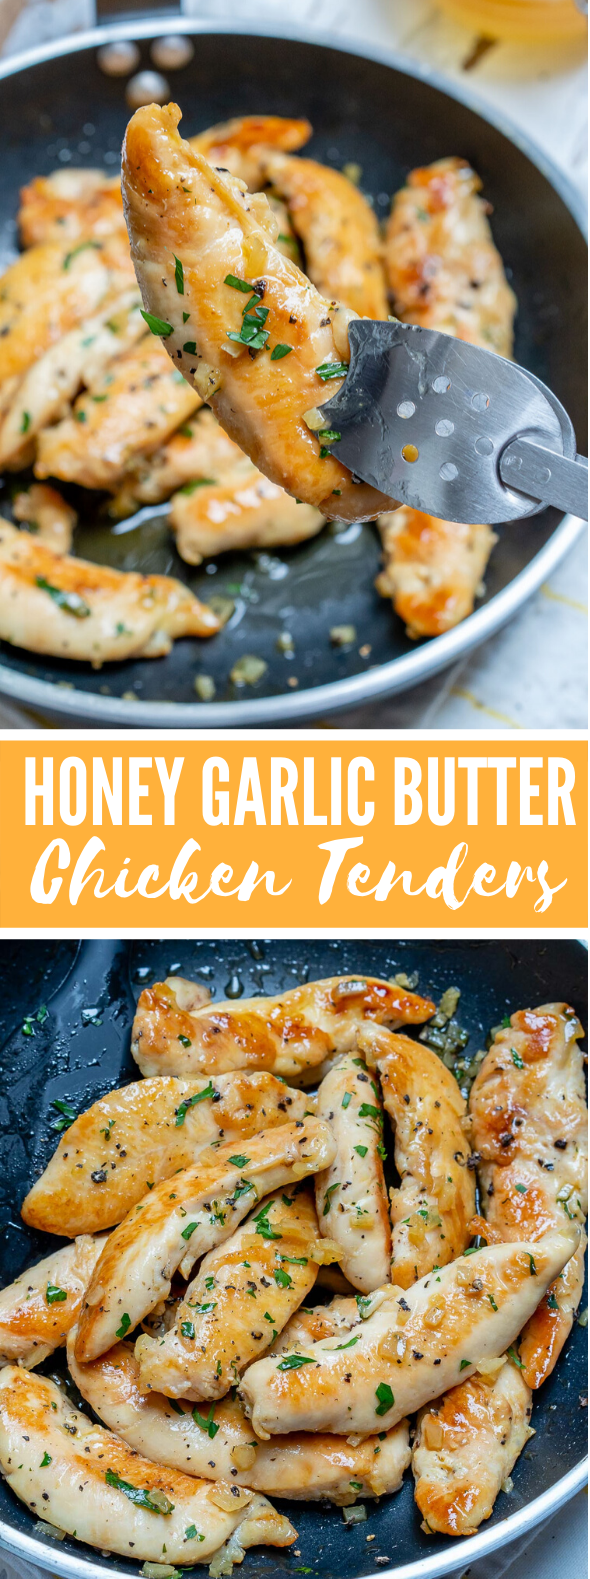 Honey Garlic Butter Chicken Tenders for Clean Eating Meal Prep! #heatlhy #dinner